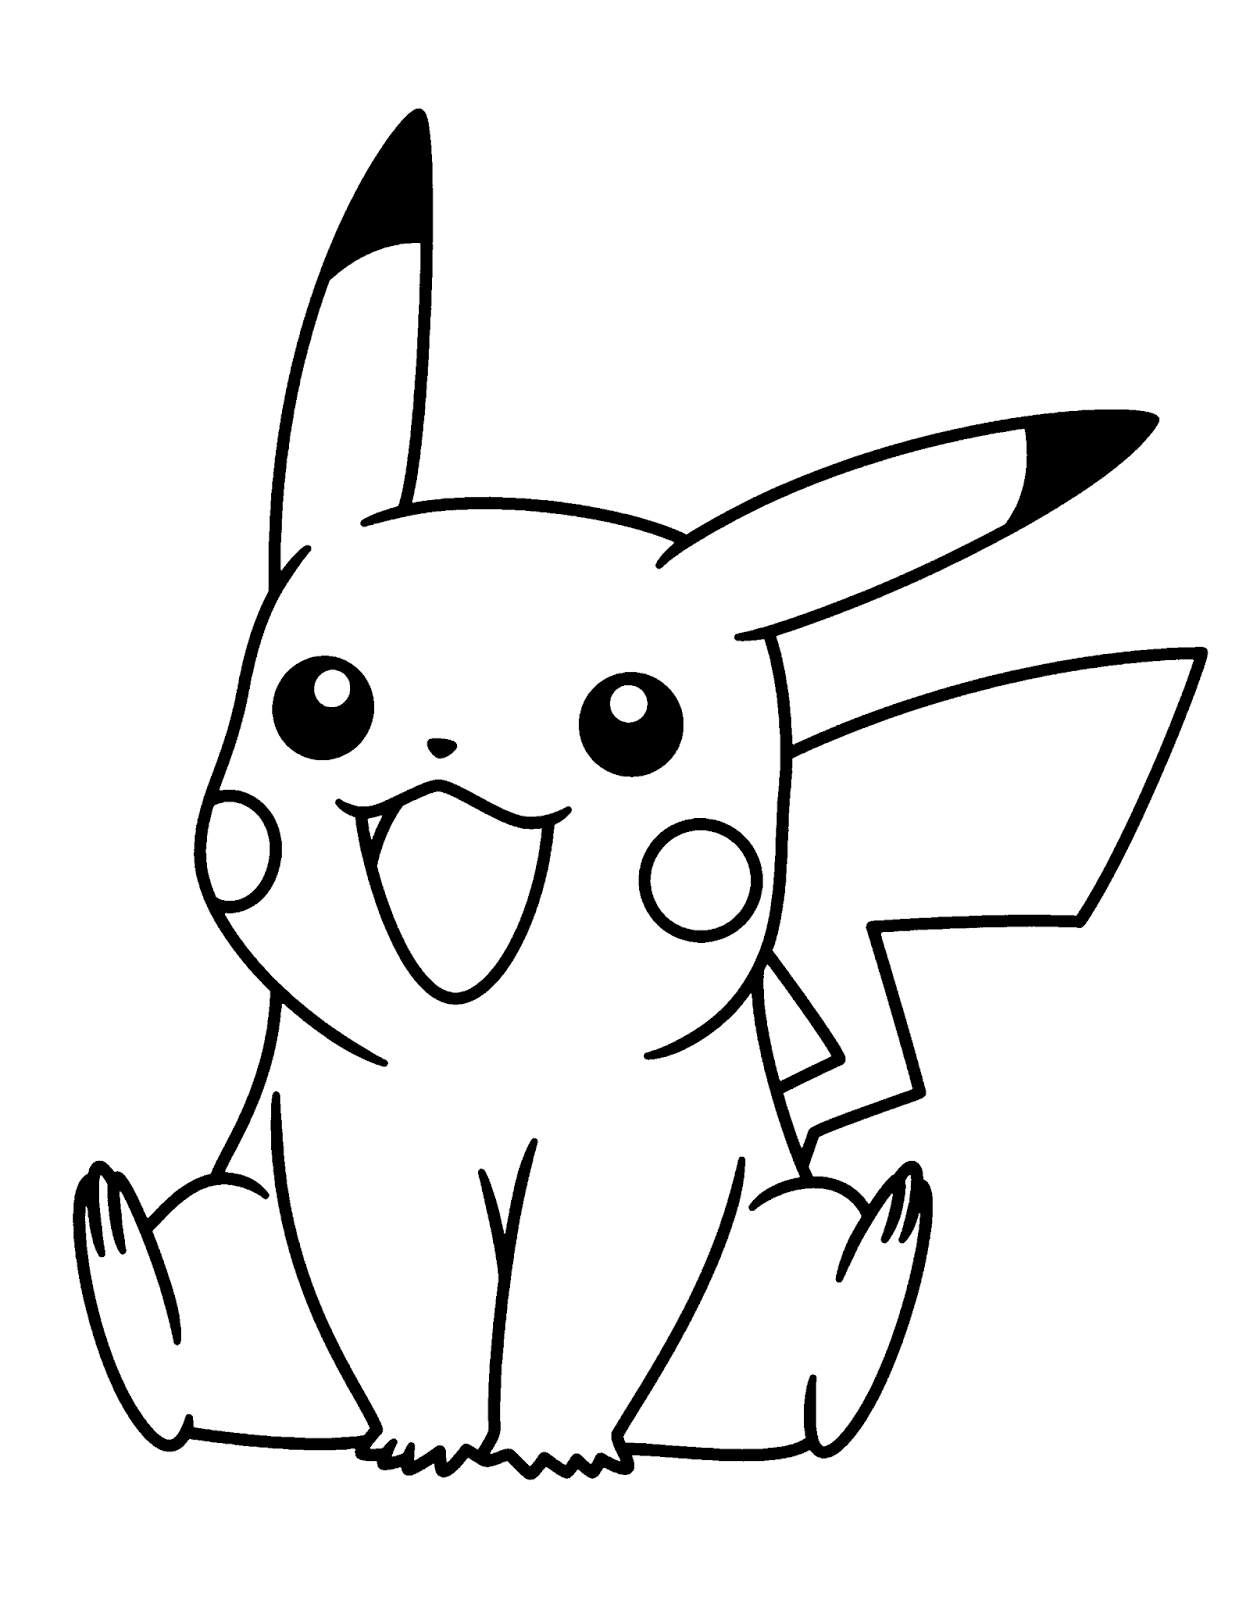 pokemon printable coloring sheets pokemon coloring pages join your favorite pokemon on an coloring sheets pokemon printable